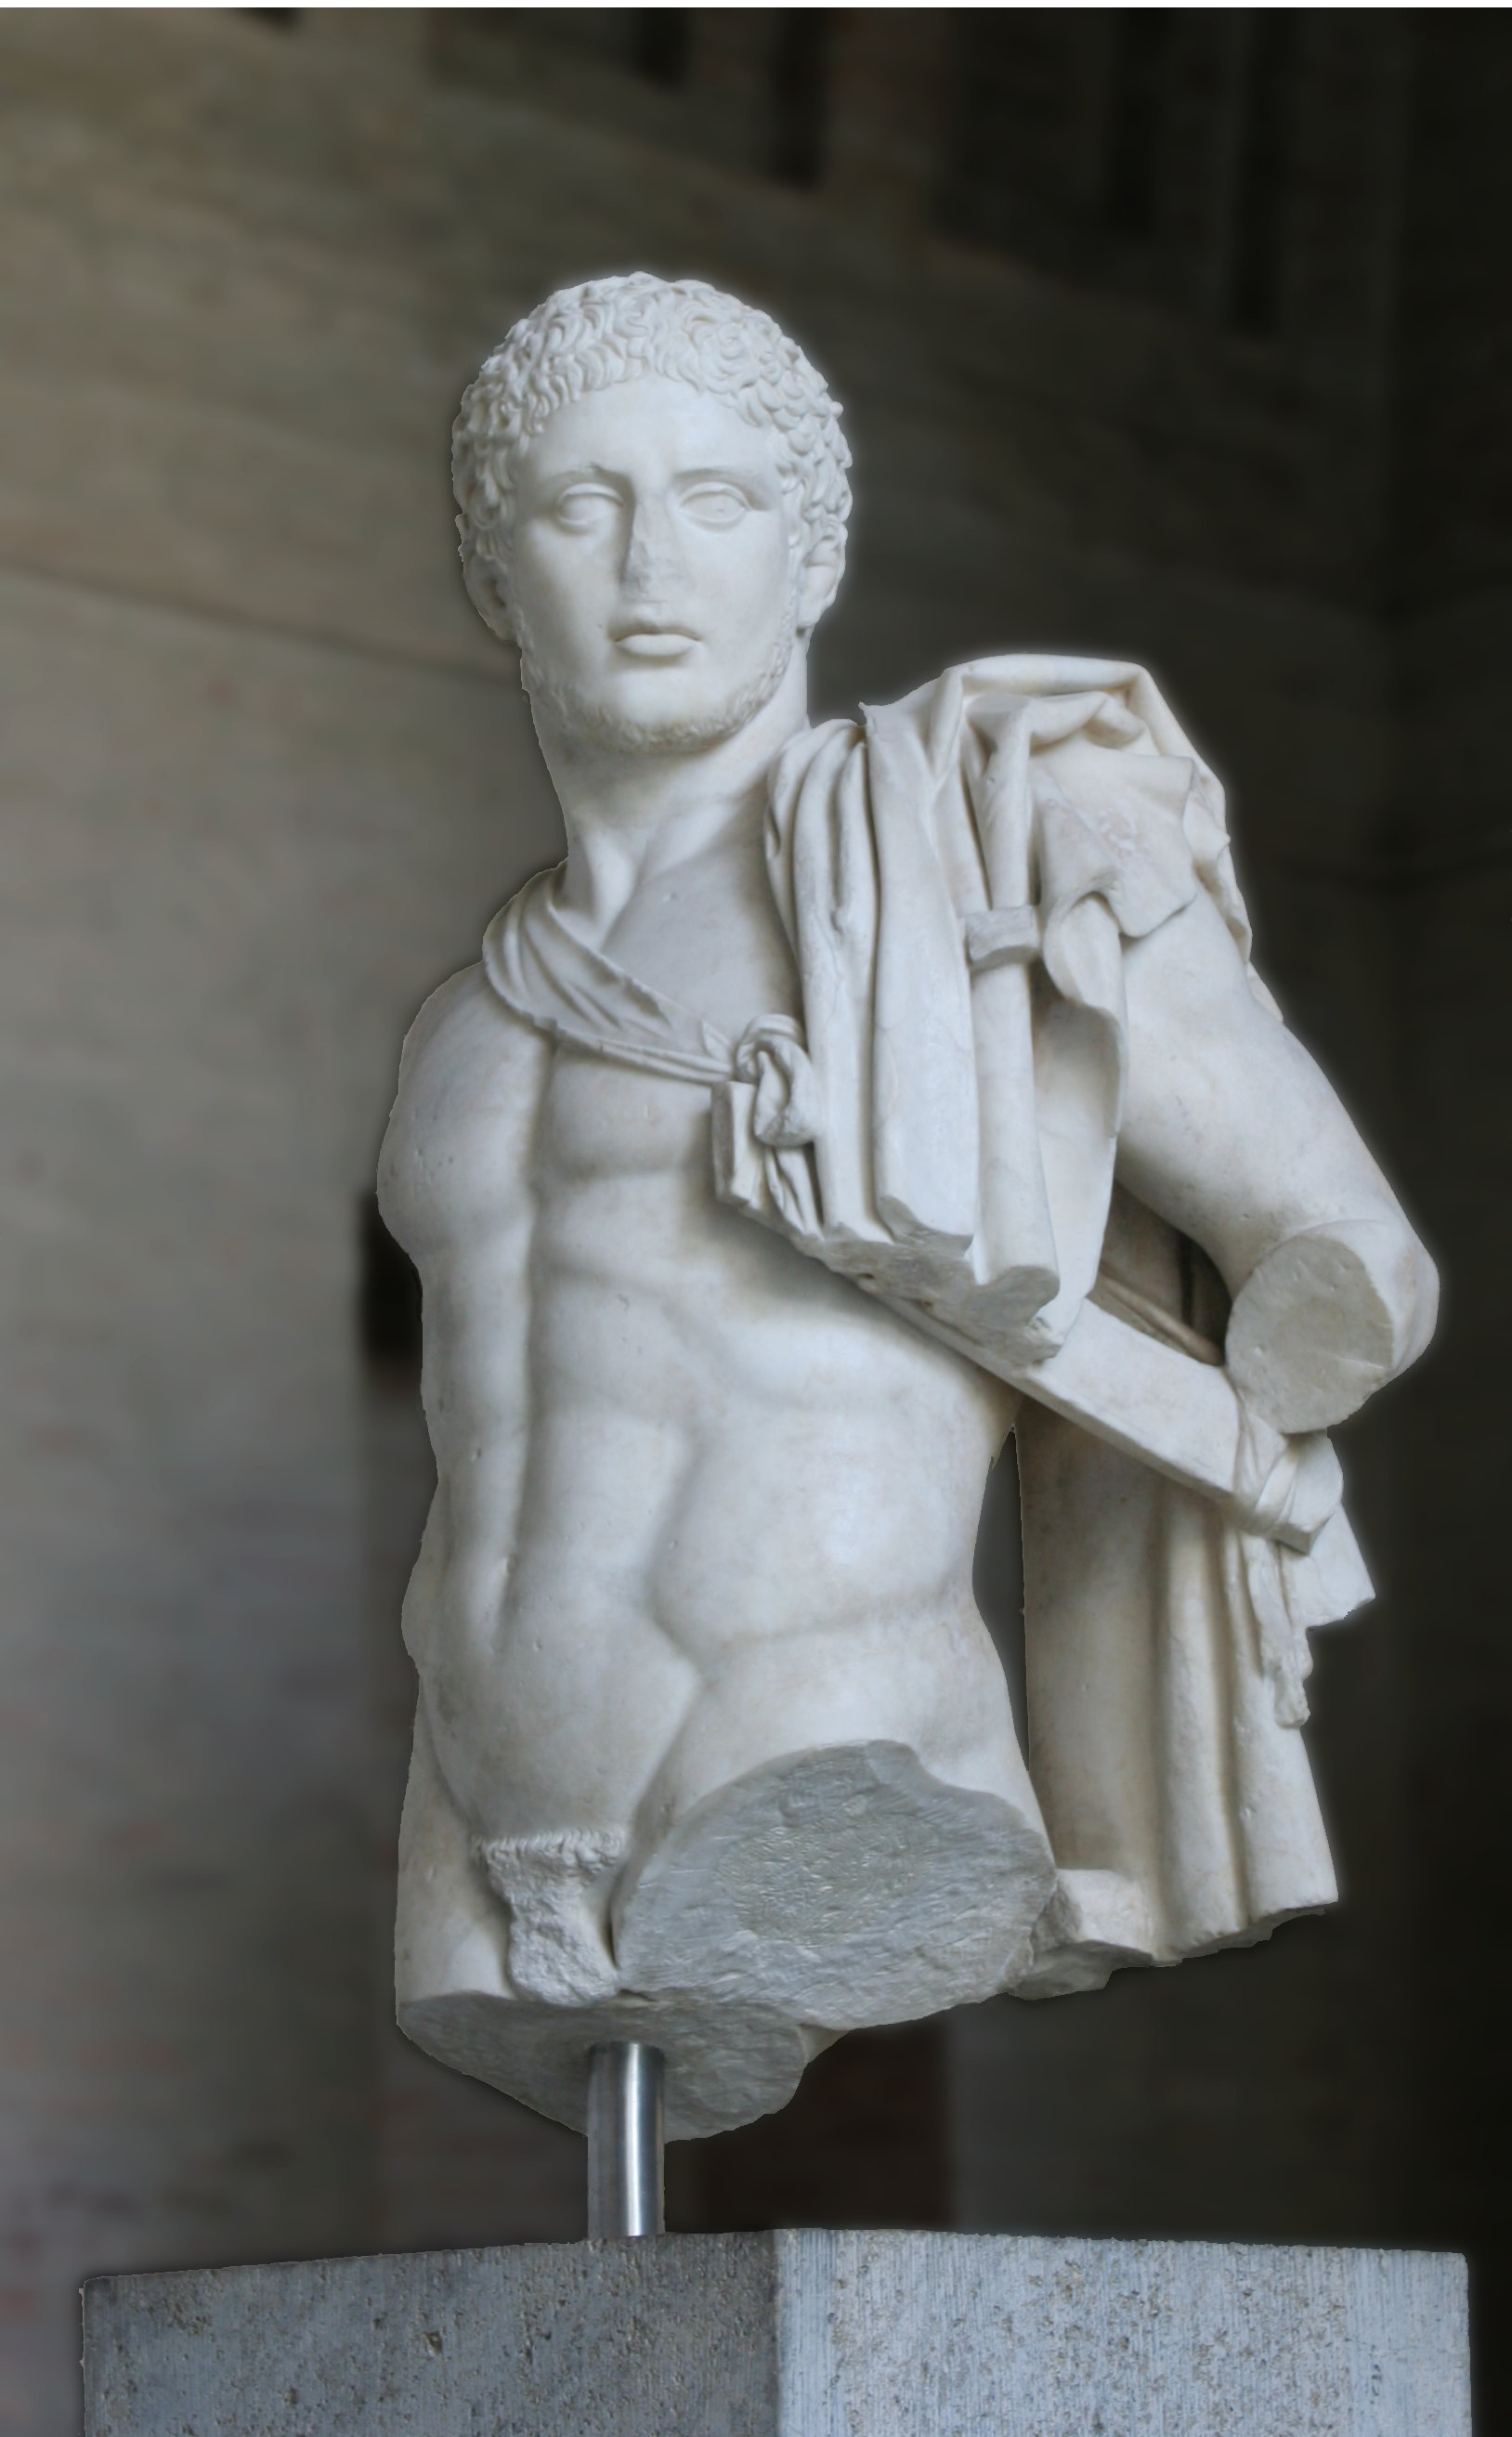 Diomedes, King of Argos – Roman copy of a statue by Kresilas from ca. 430 BC. Glyptothek, Munich.